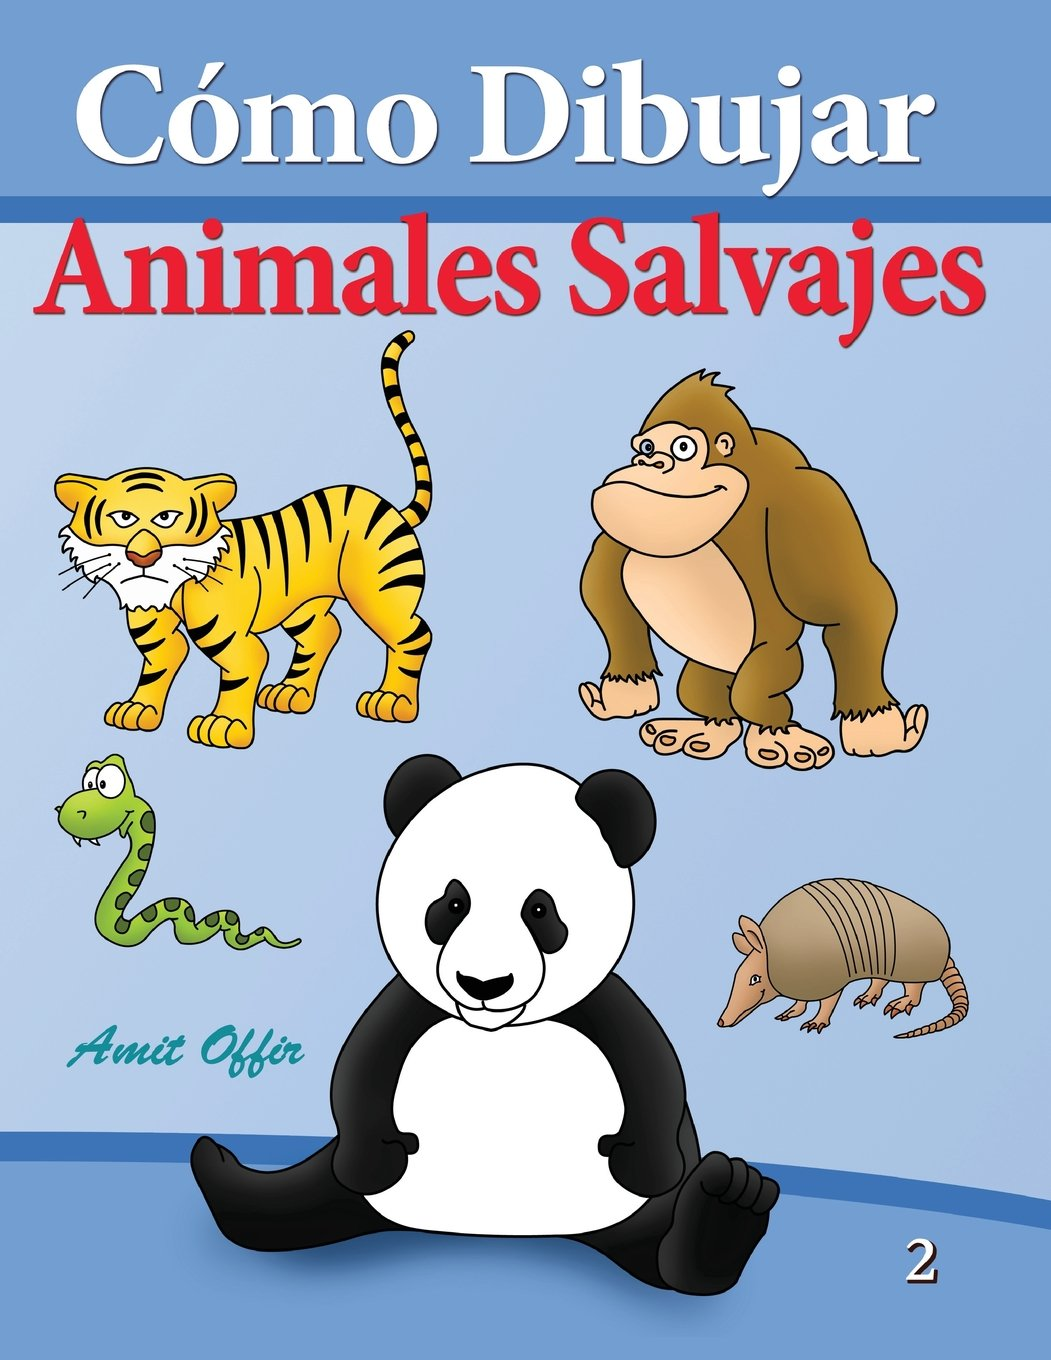 Cómo Dibujar - Animales Salvajes: Libros de Dibujo: Volume 2 (Cómo Dibujar Comics) Tapa blanda – 21 nov 2013 amit offir Createspace Independent Pub 1494231352 Art - Drawing